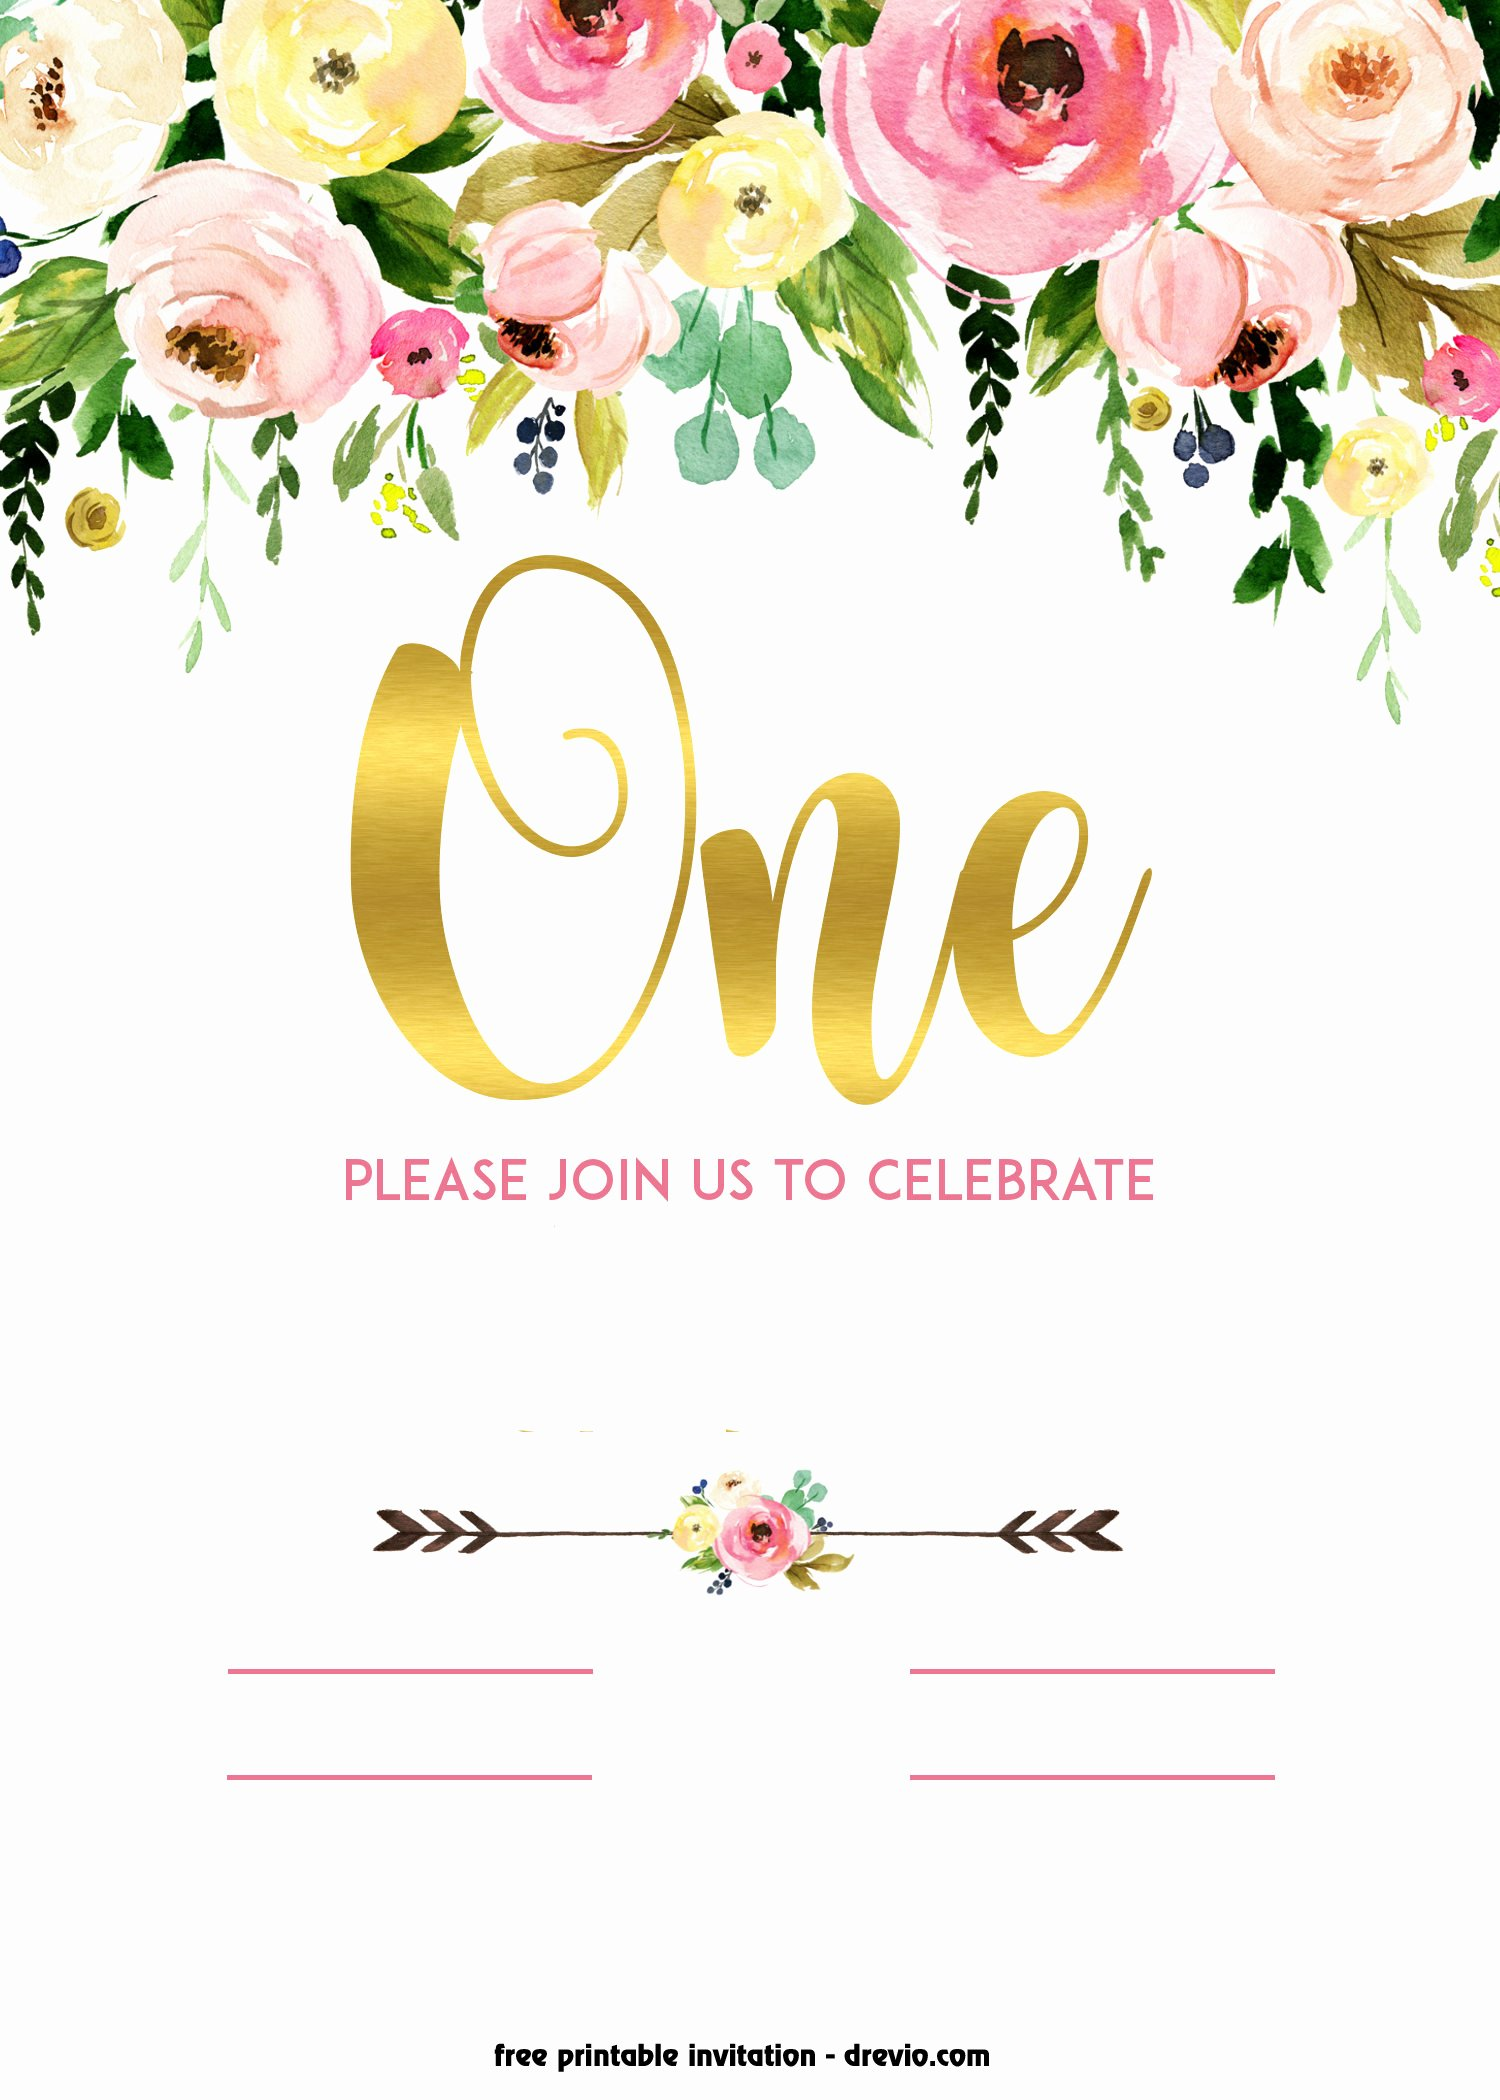 Floral Invitation Template Beautiful Free Printable 1st Birthday Invitation – Vintage Style